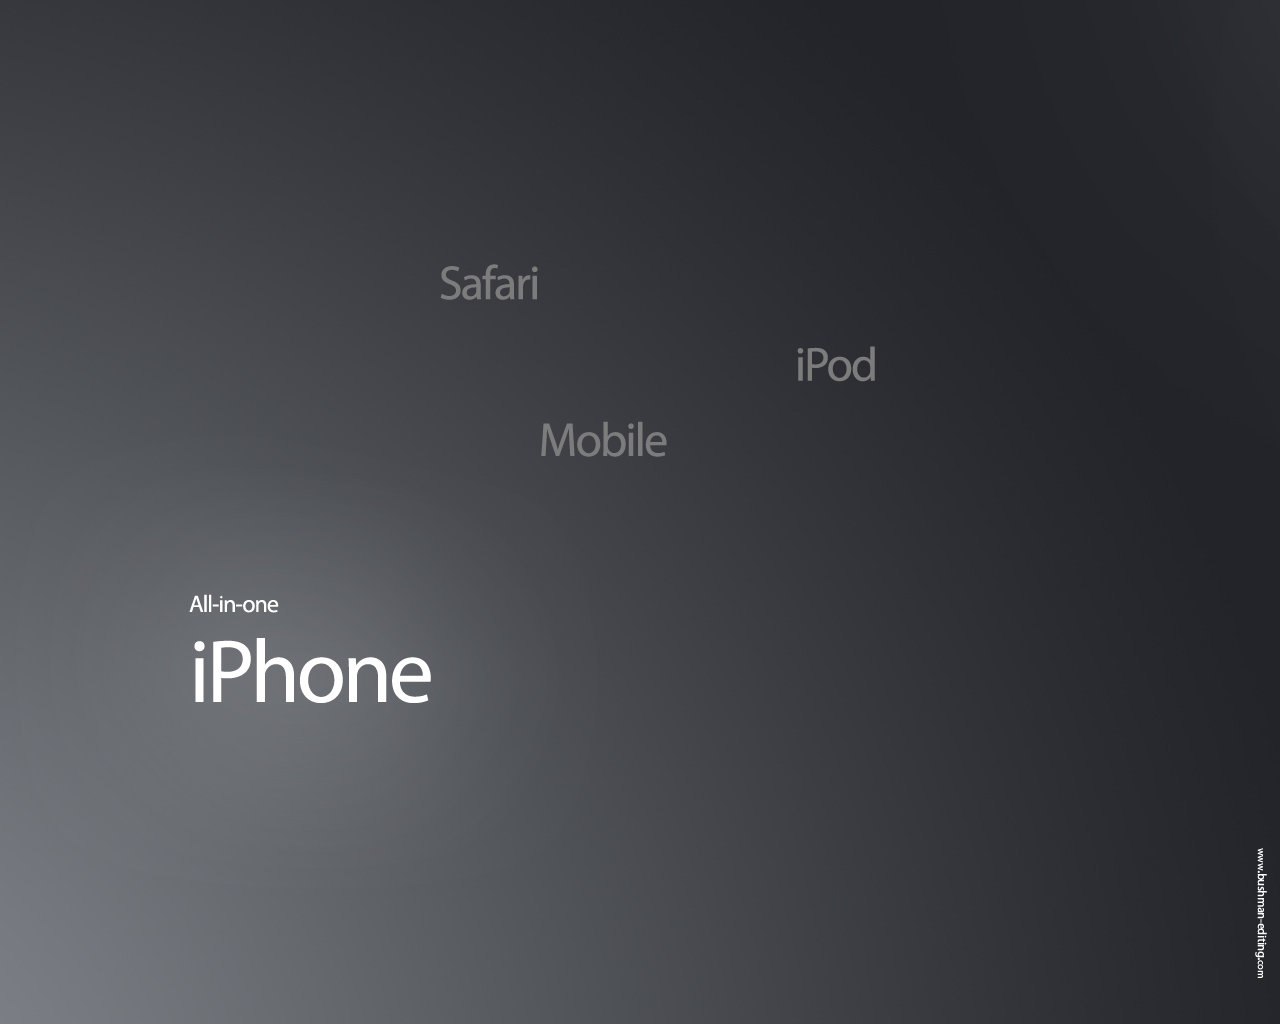 All In One iPhone Wallpaper by mr iphone 1280x1024